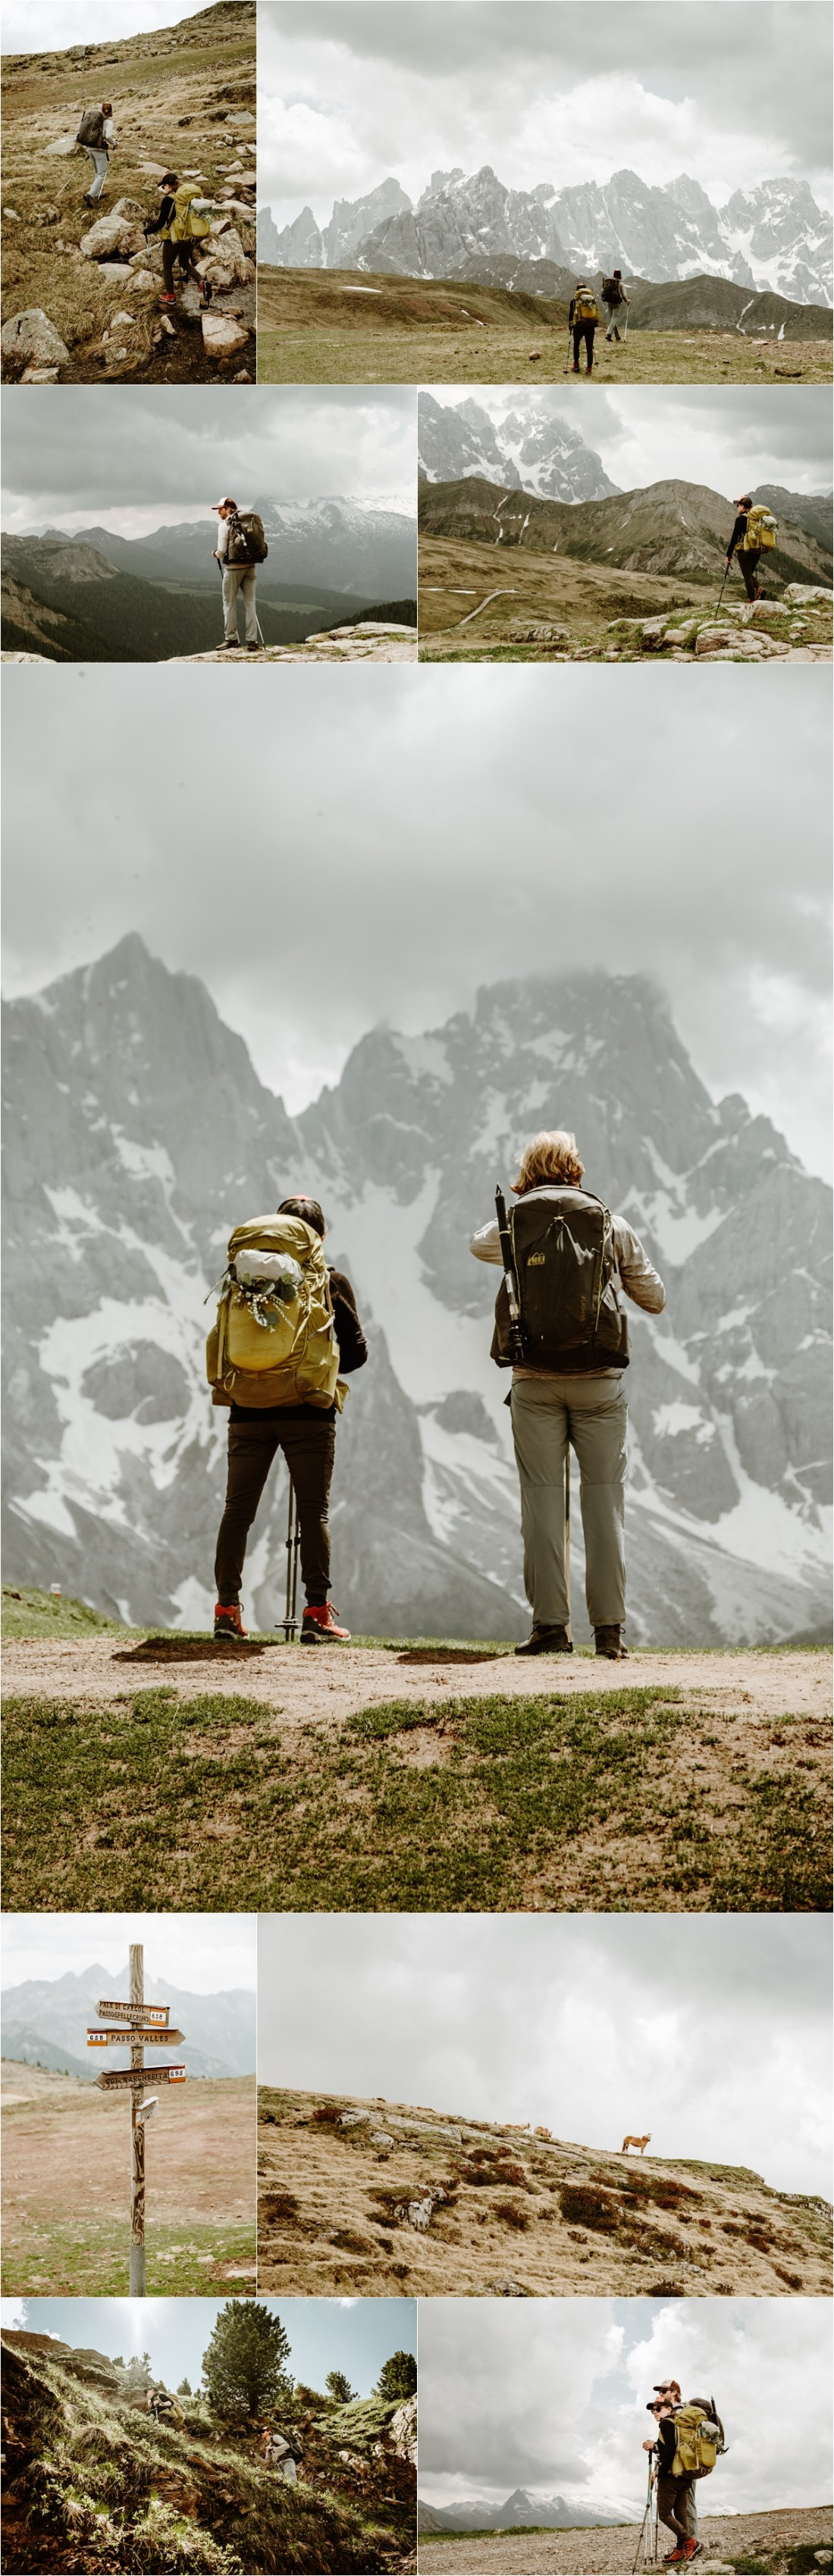 Hiking the Alta Via 2 in the Dolomites to Passo Valles. Photography by Wild Connections Photography